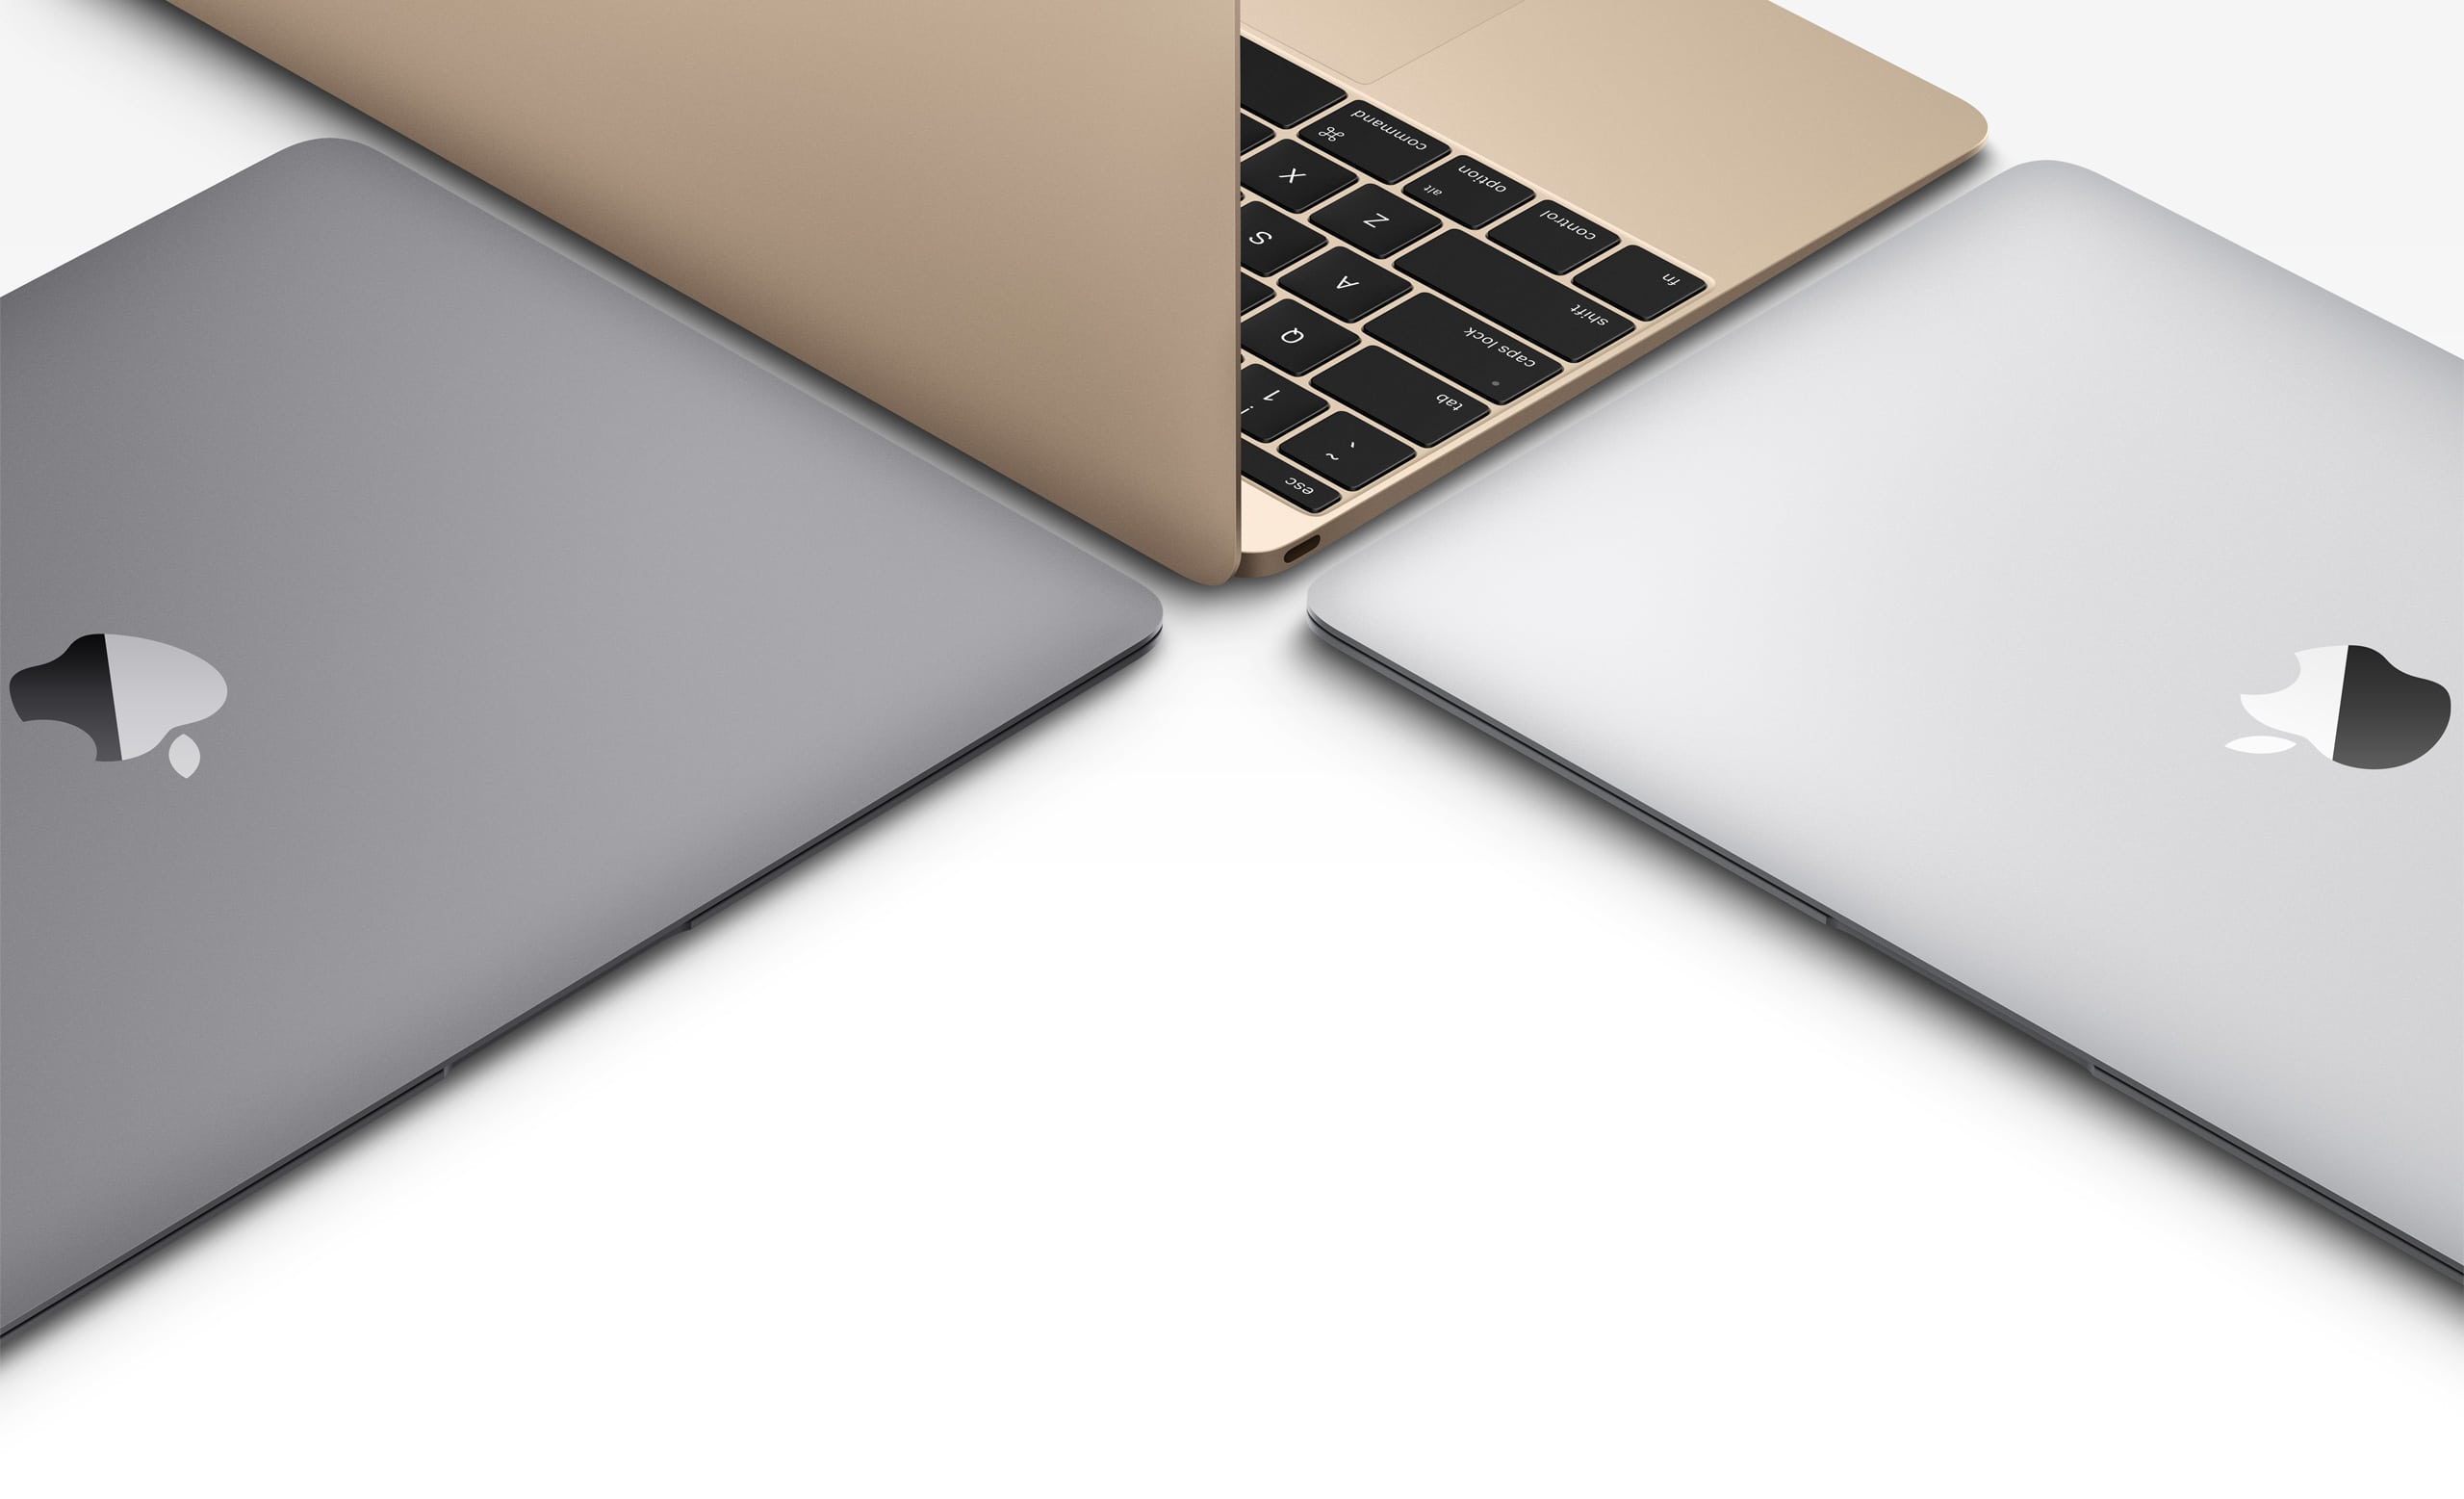 gold-silver-space-gray-macbook